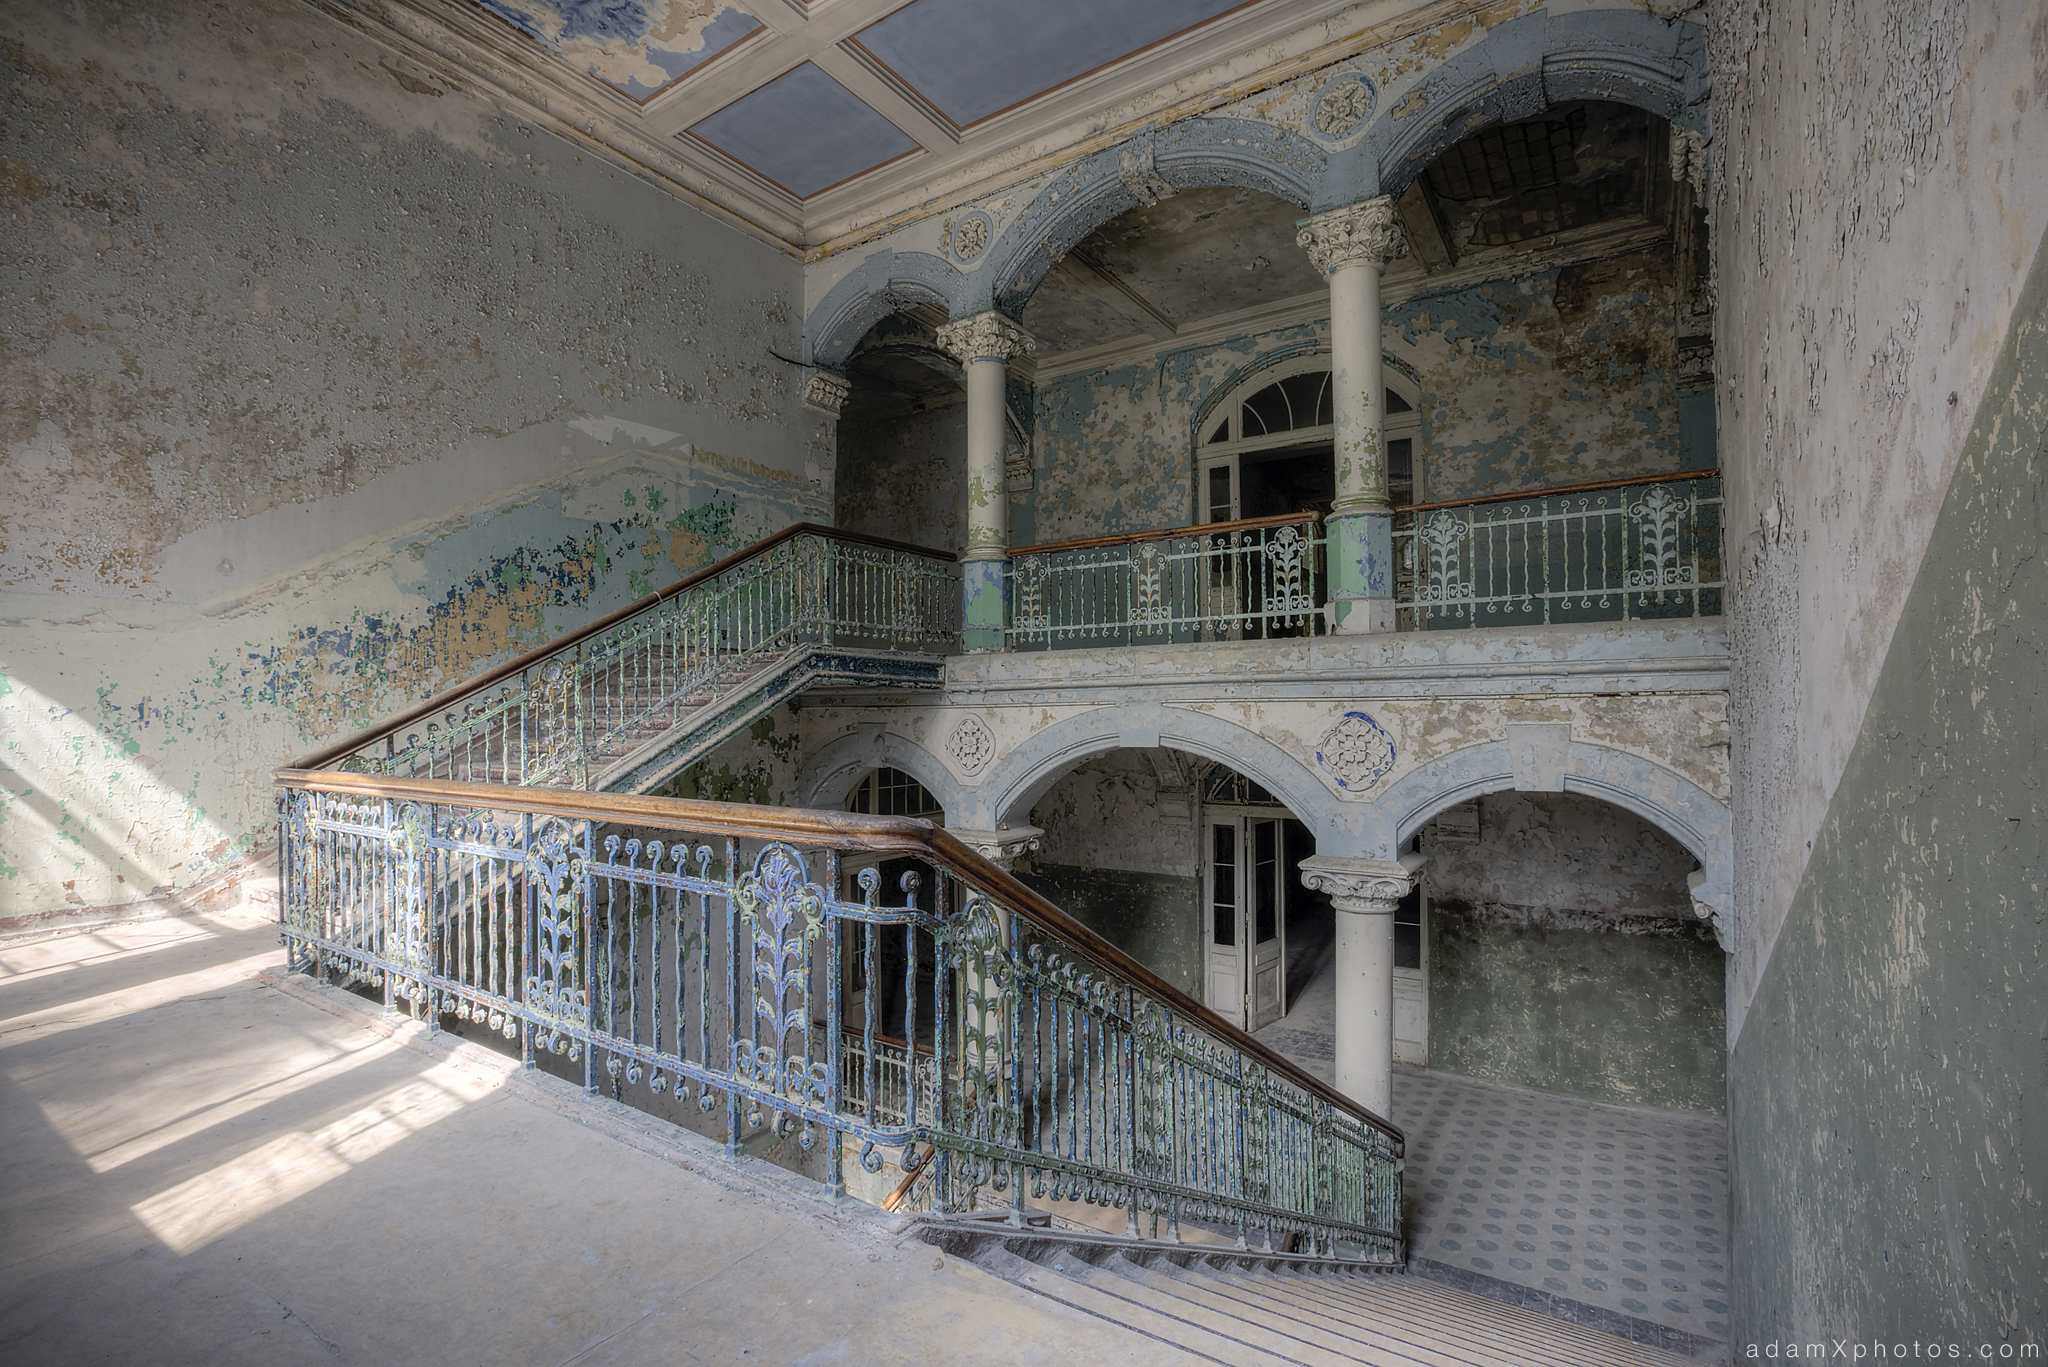 Adam X Urbex Beelitz Heilstatten Germany Urban Exploration Mens Men's Sanatorium Hospital Decay Lost Abandoned Hidden Entrance